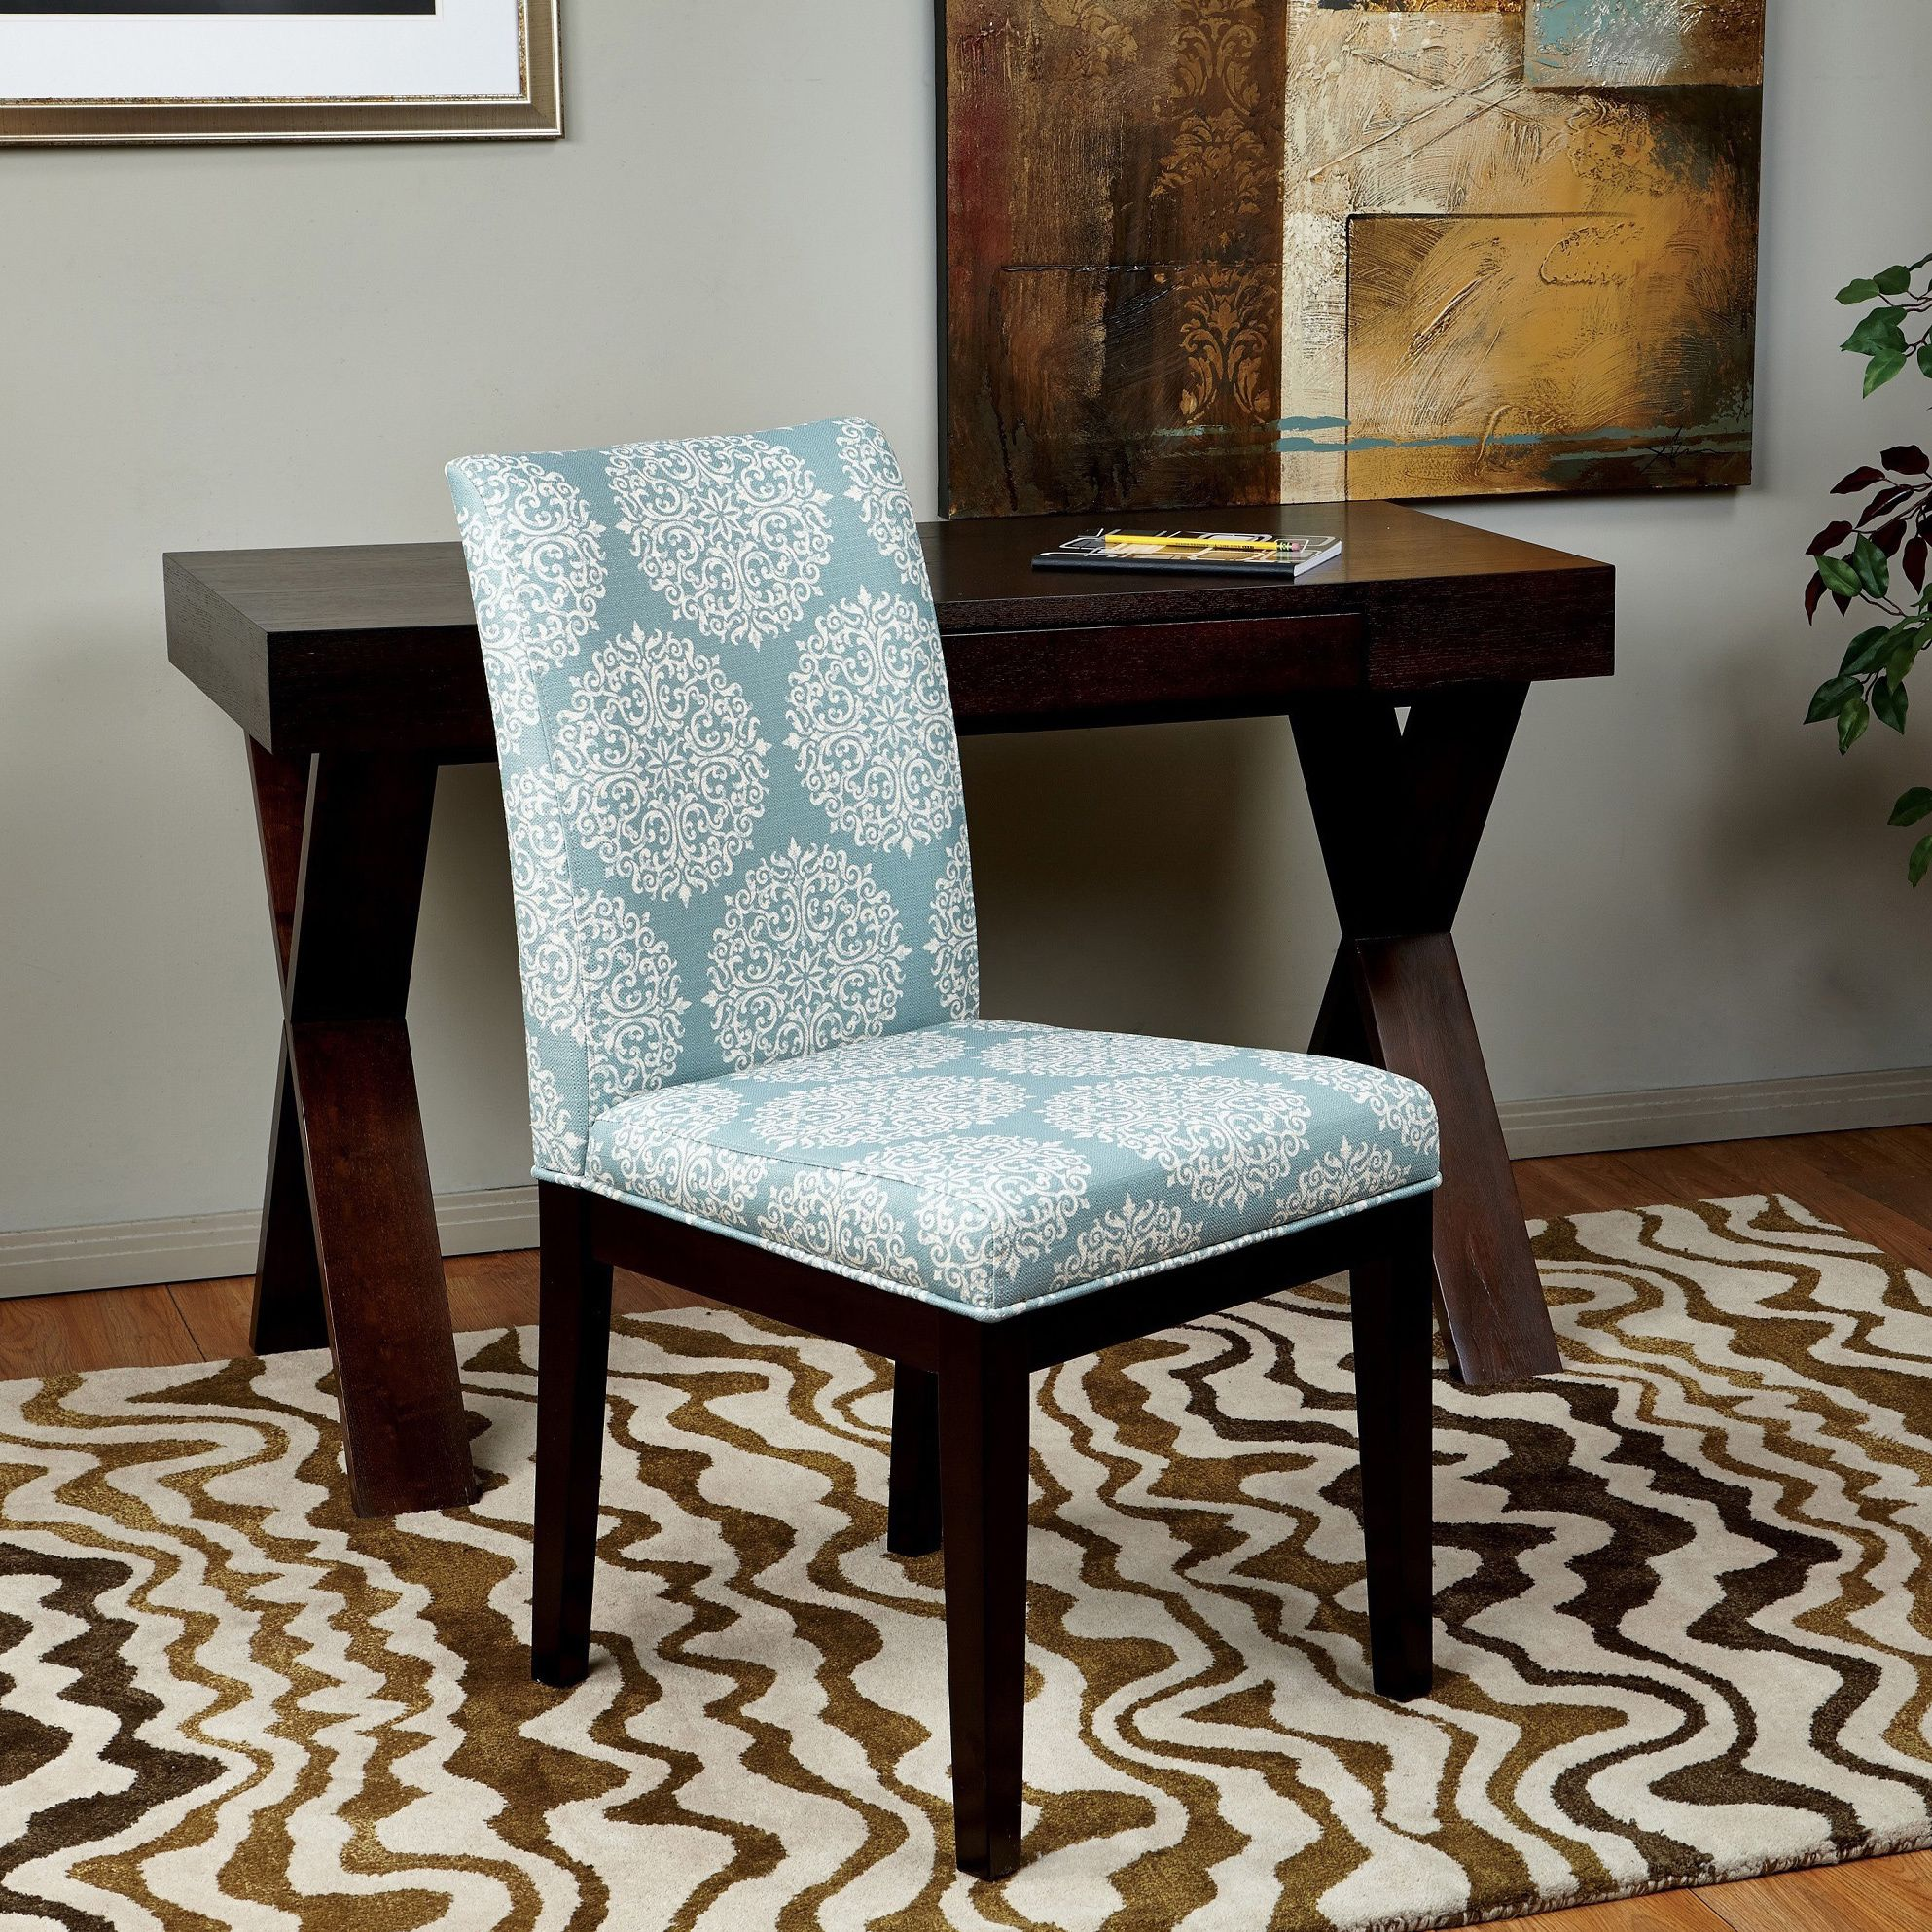 Class And Sophistication Beam From The New Ave Six Dakota Parsons Chair. A  Specimen Of